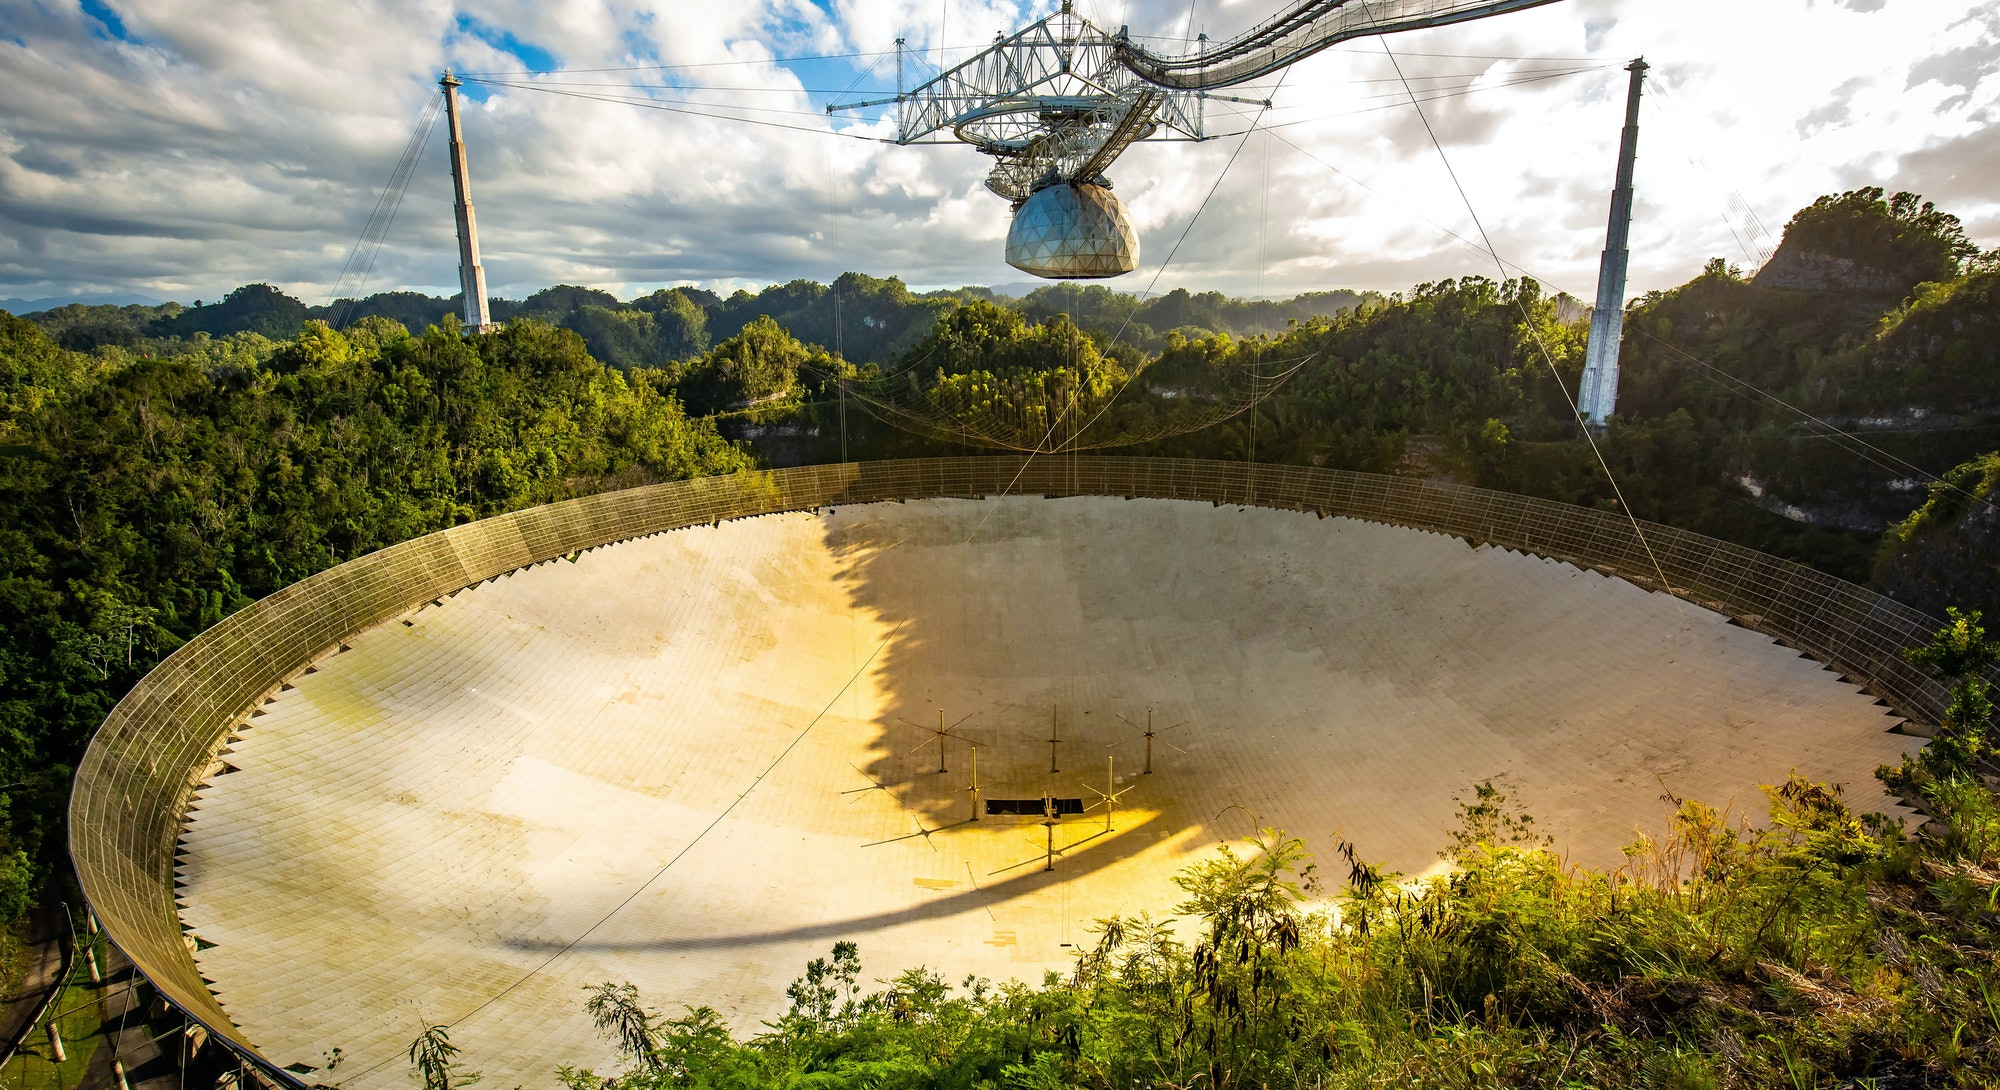 Large radio telescope dish in Arecibo national observatory